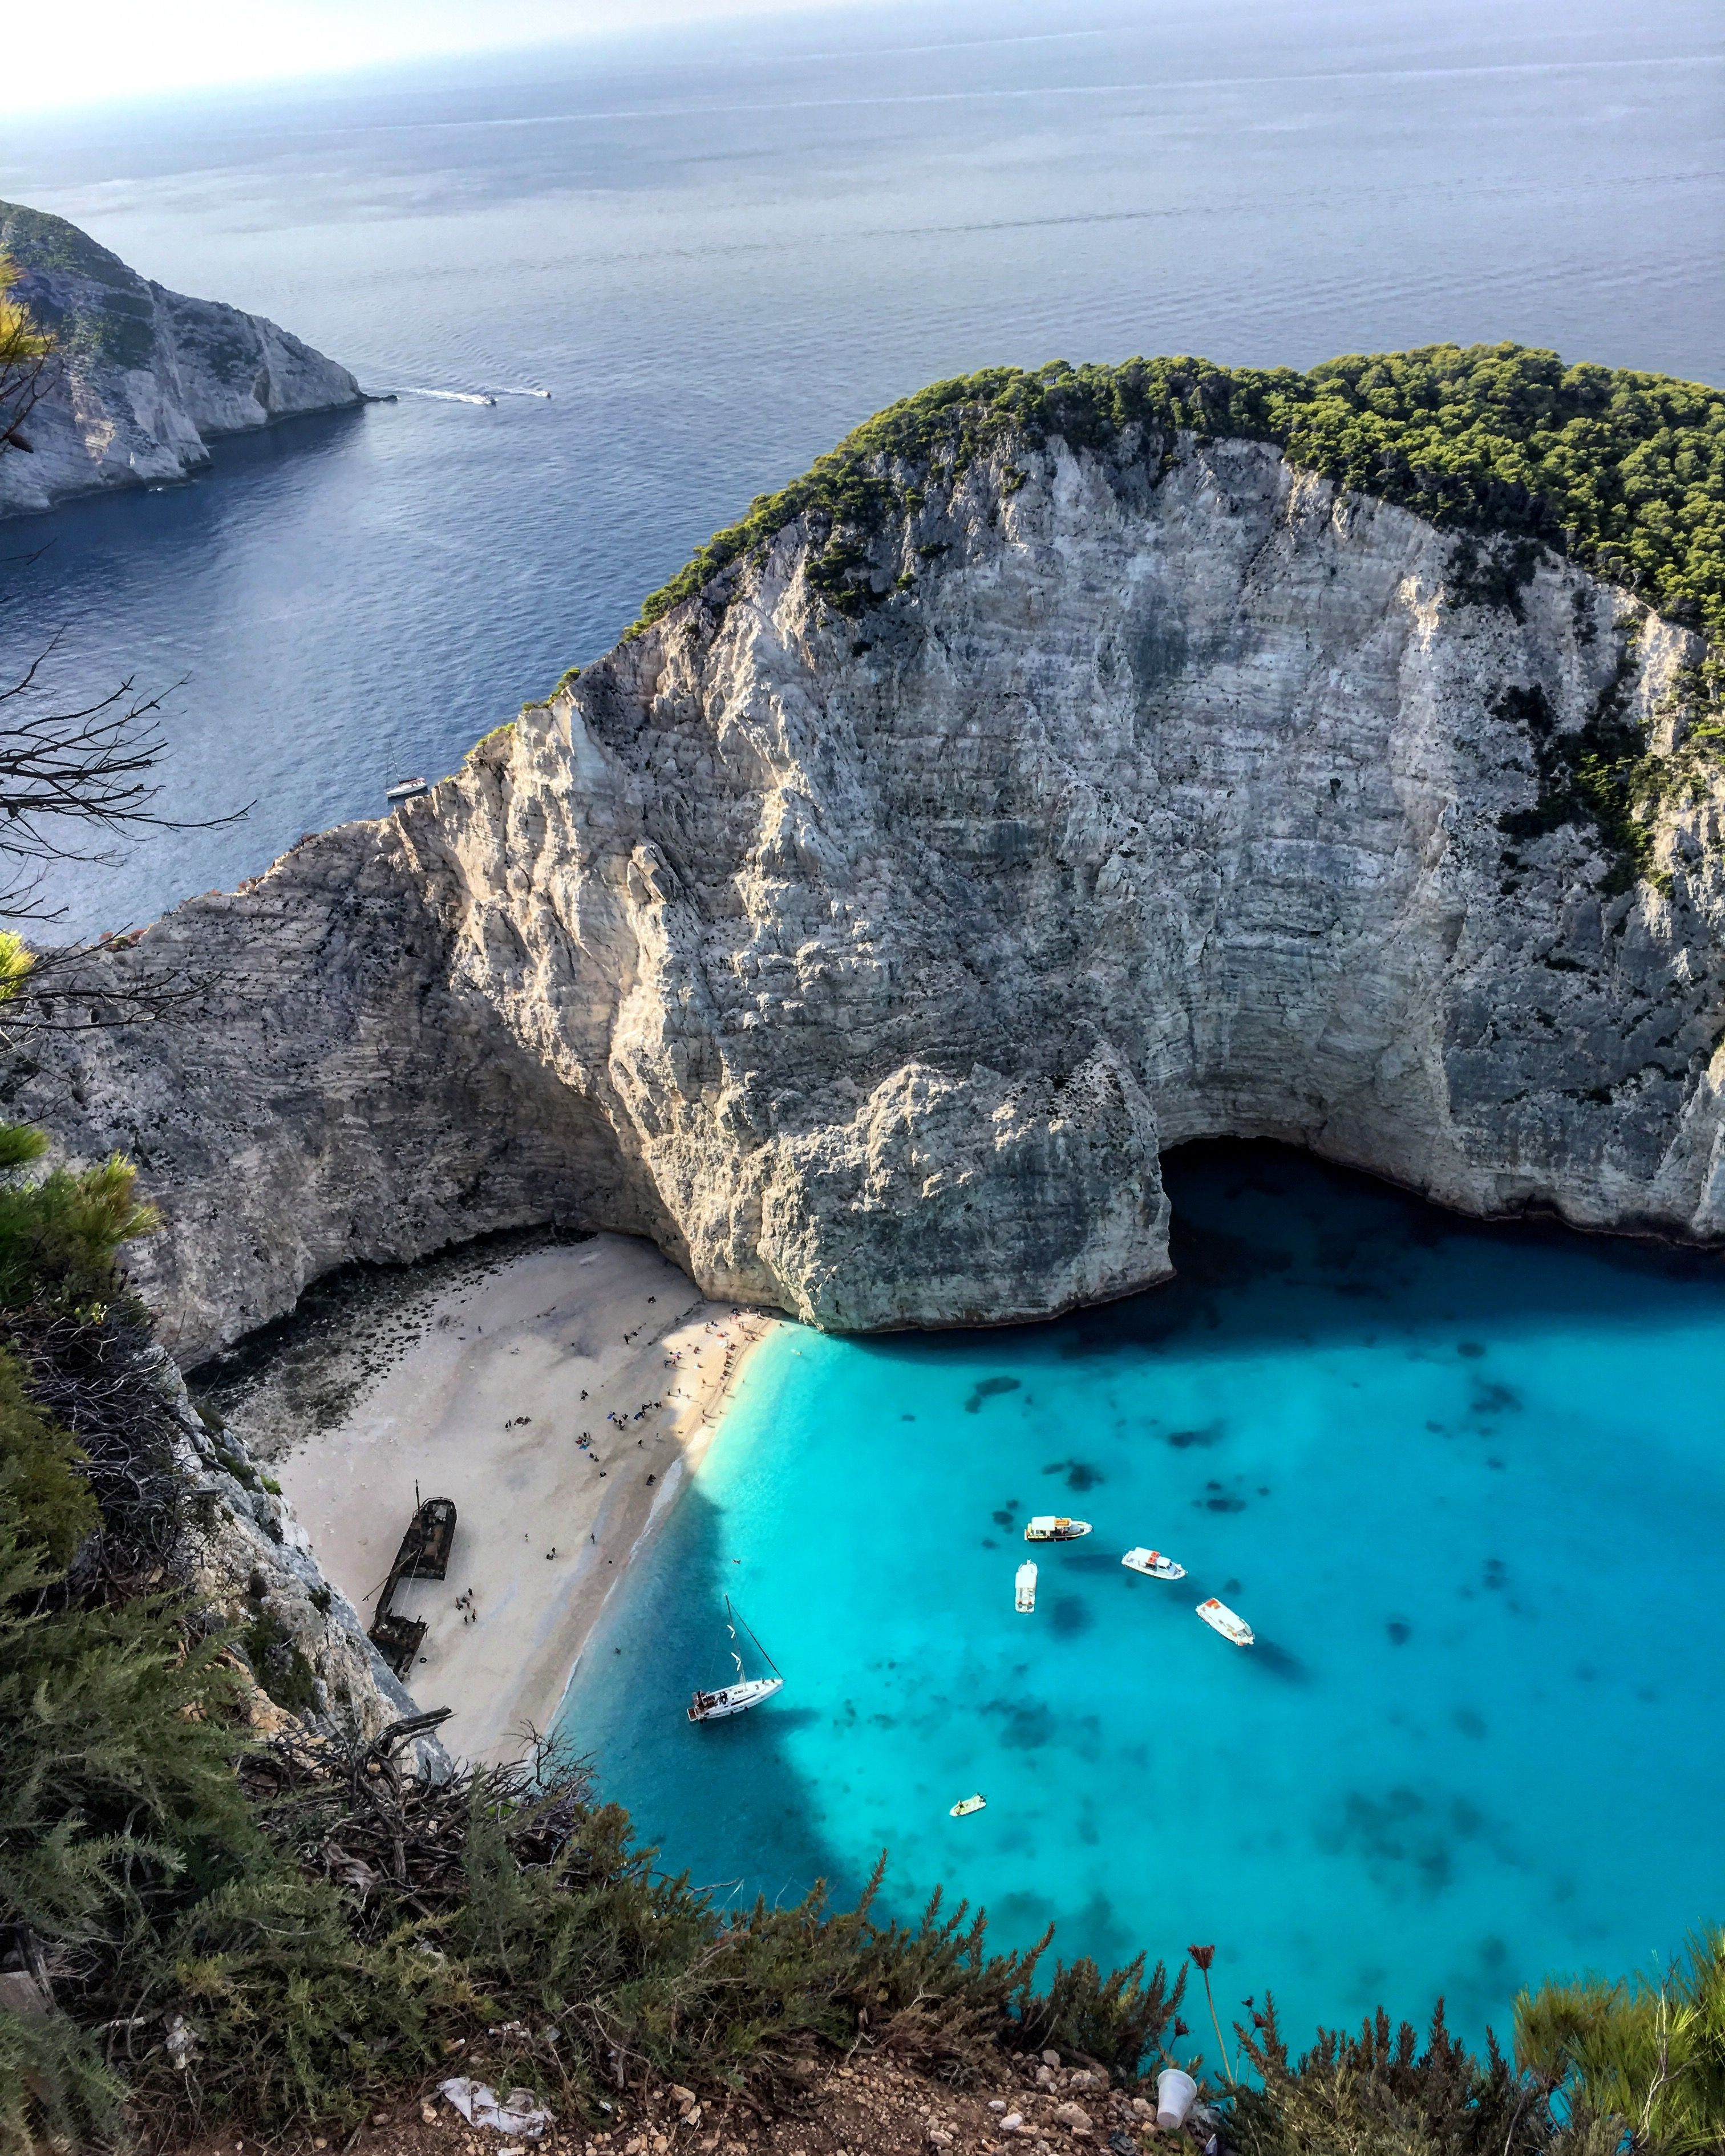 Shipwreck Beach Water In Shades You Never Thought Imaginable Zakynthos Shipwreck Zakynthosbeach Places To Travel Europe Travel Zakynthos